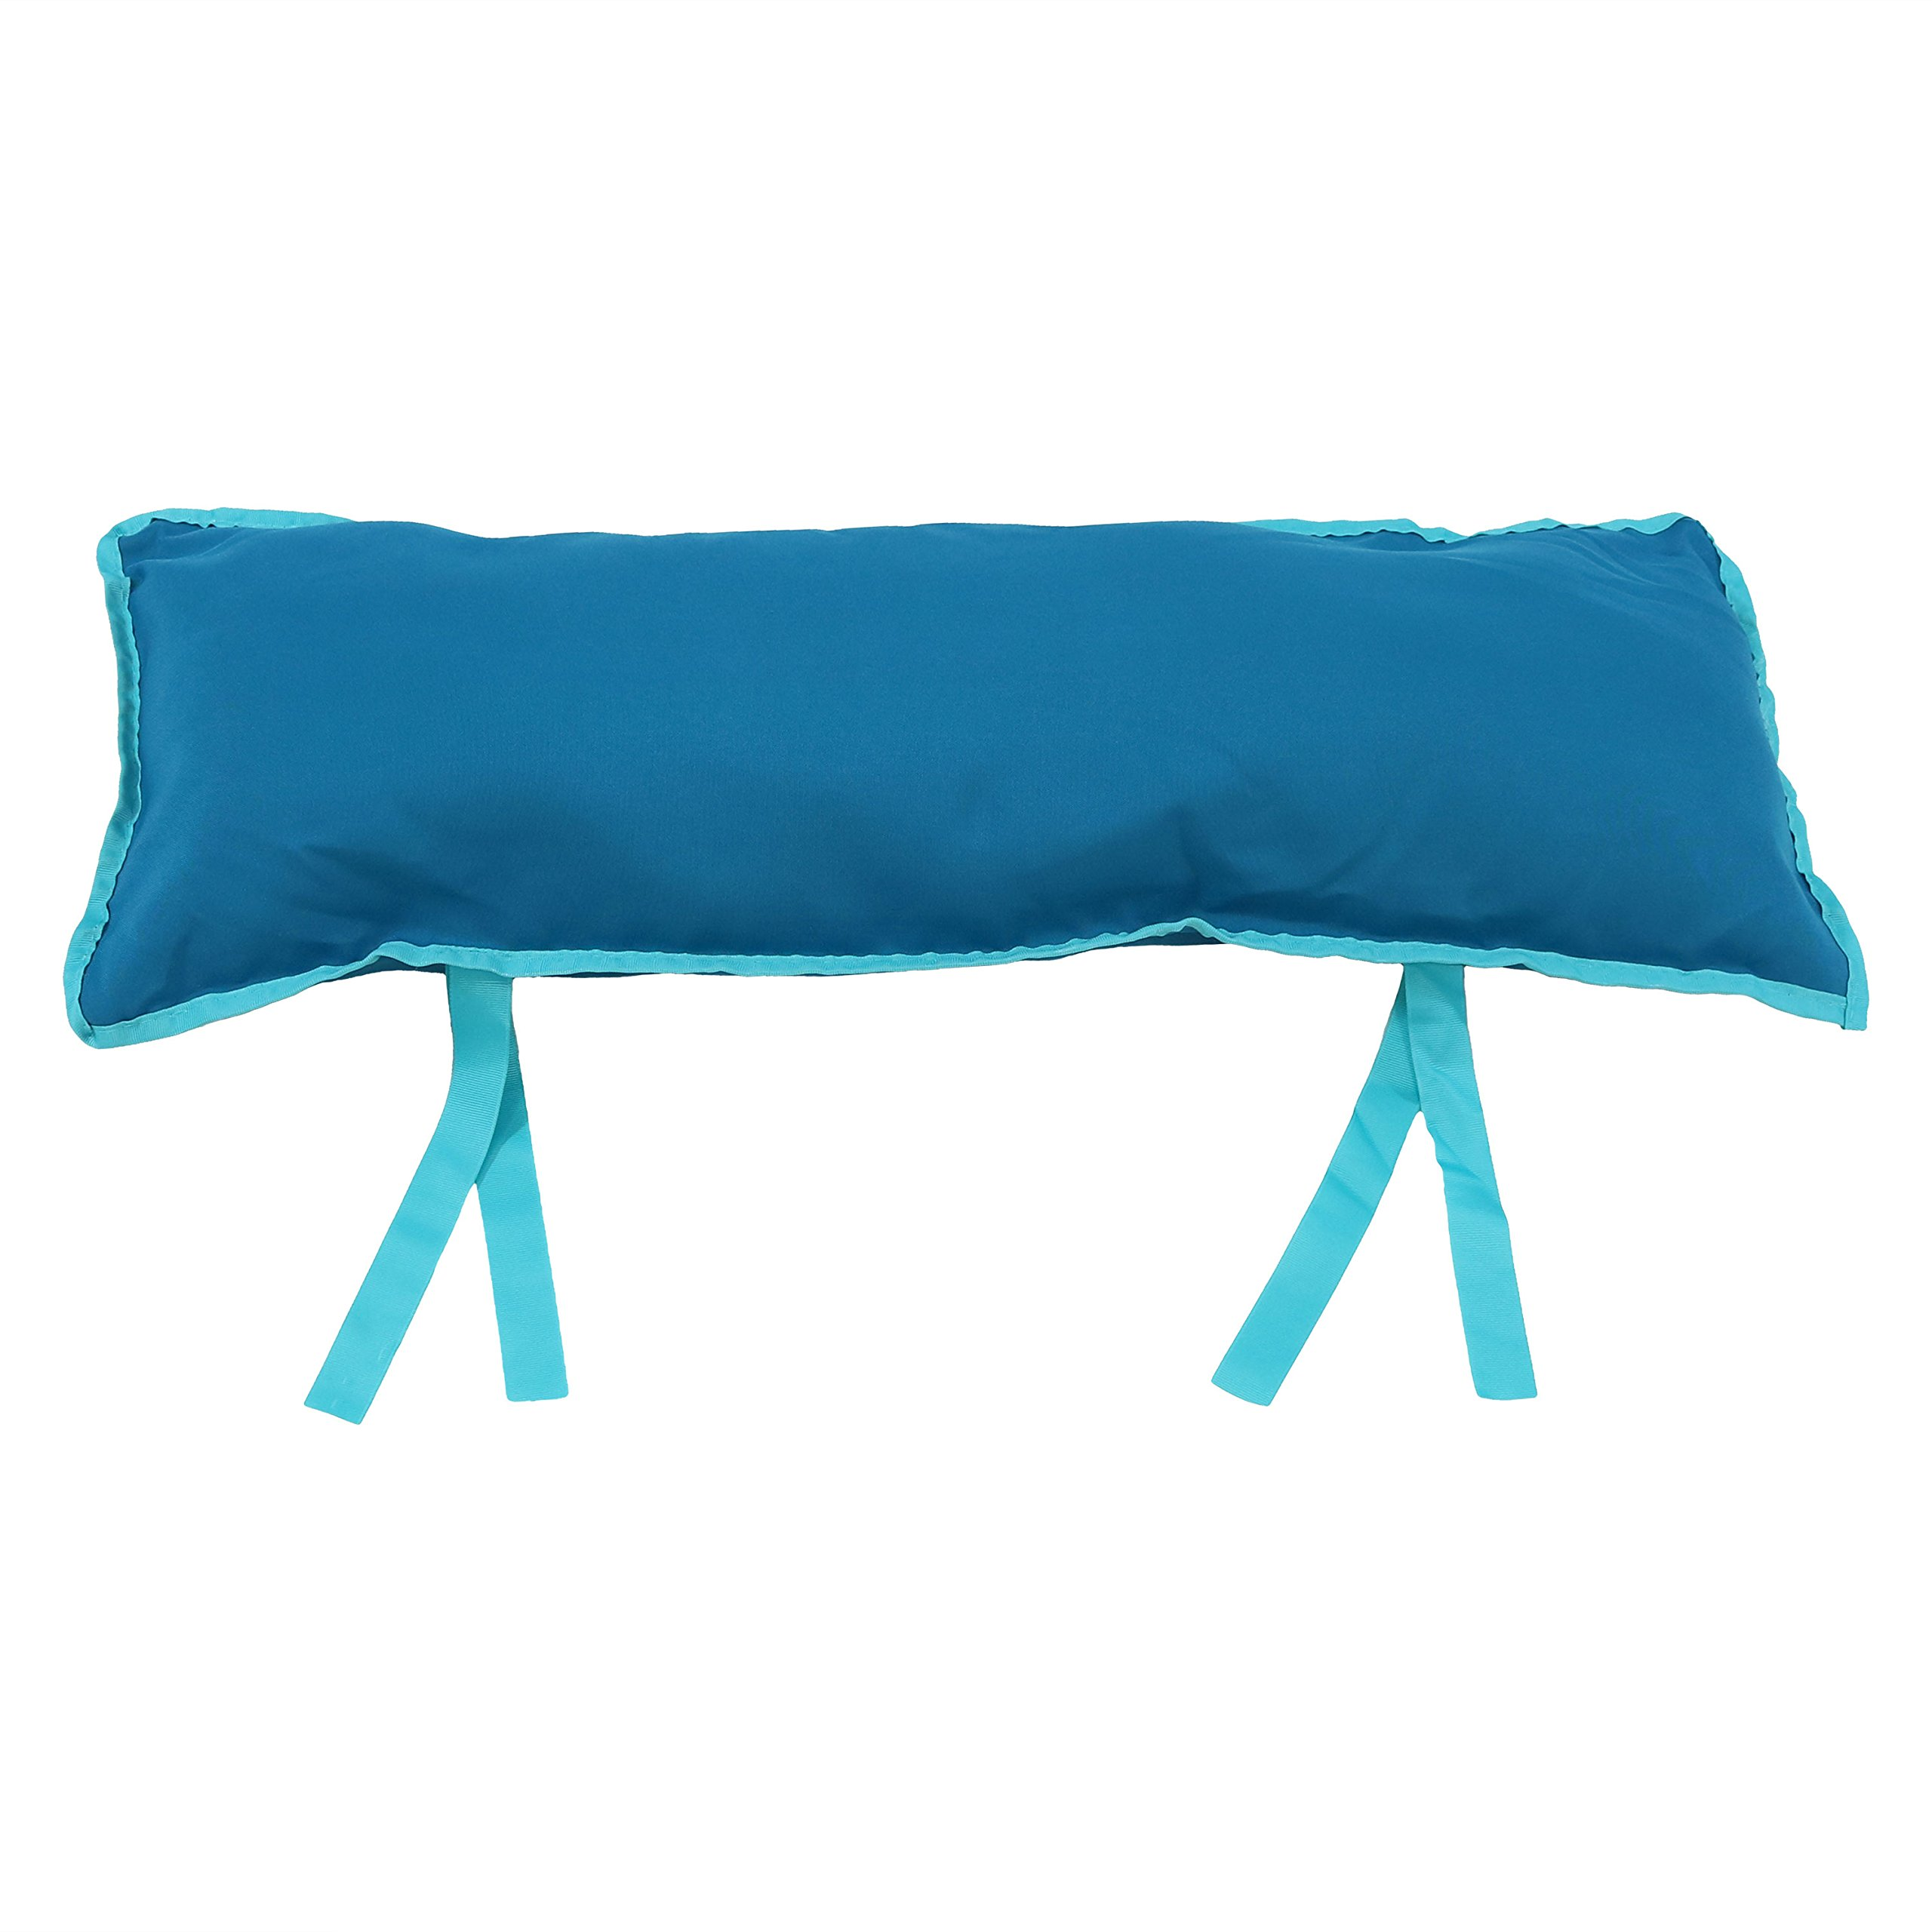 Sunnydaze Large Hammock Pillow with Ties, Outdoor Camping Pillow, Weather Resistant, Teal